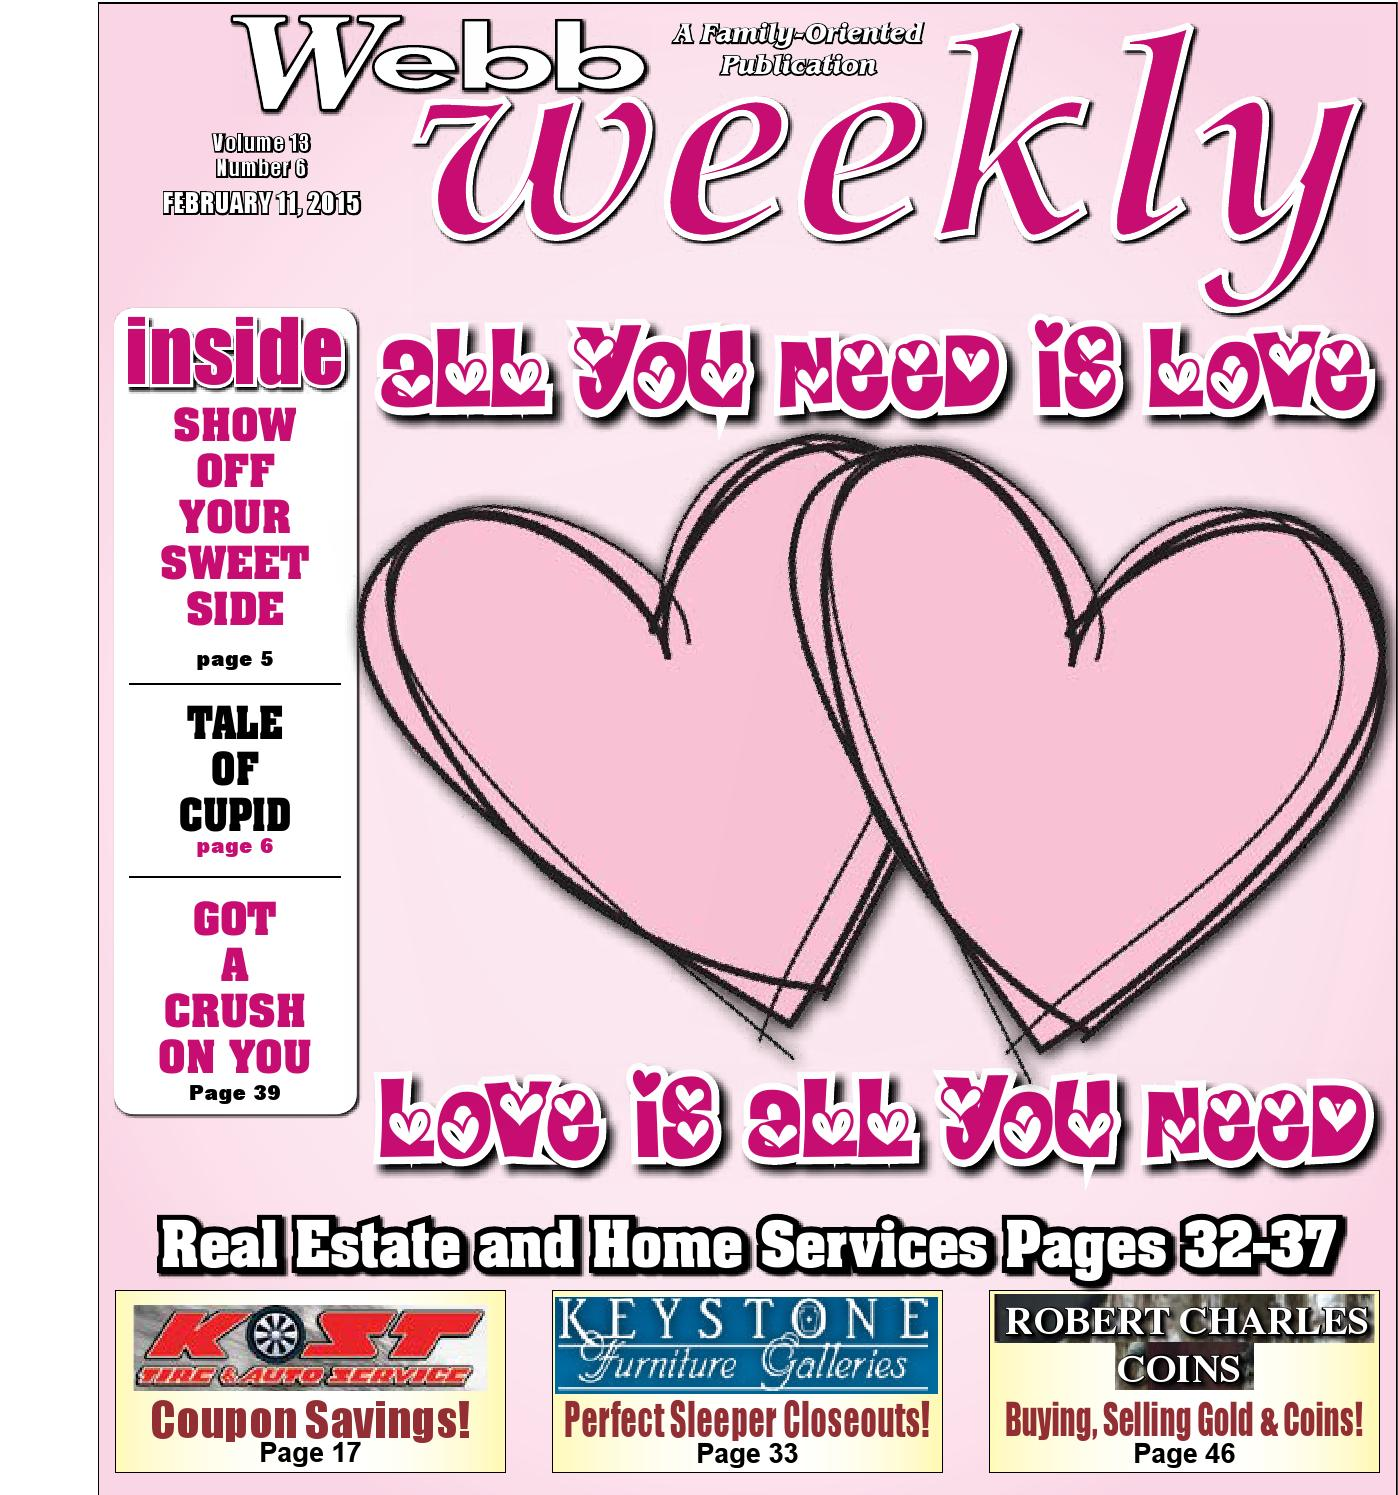 Webb Weekly February 11, 2015 by Webb Weekly - issuu